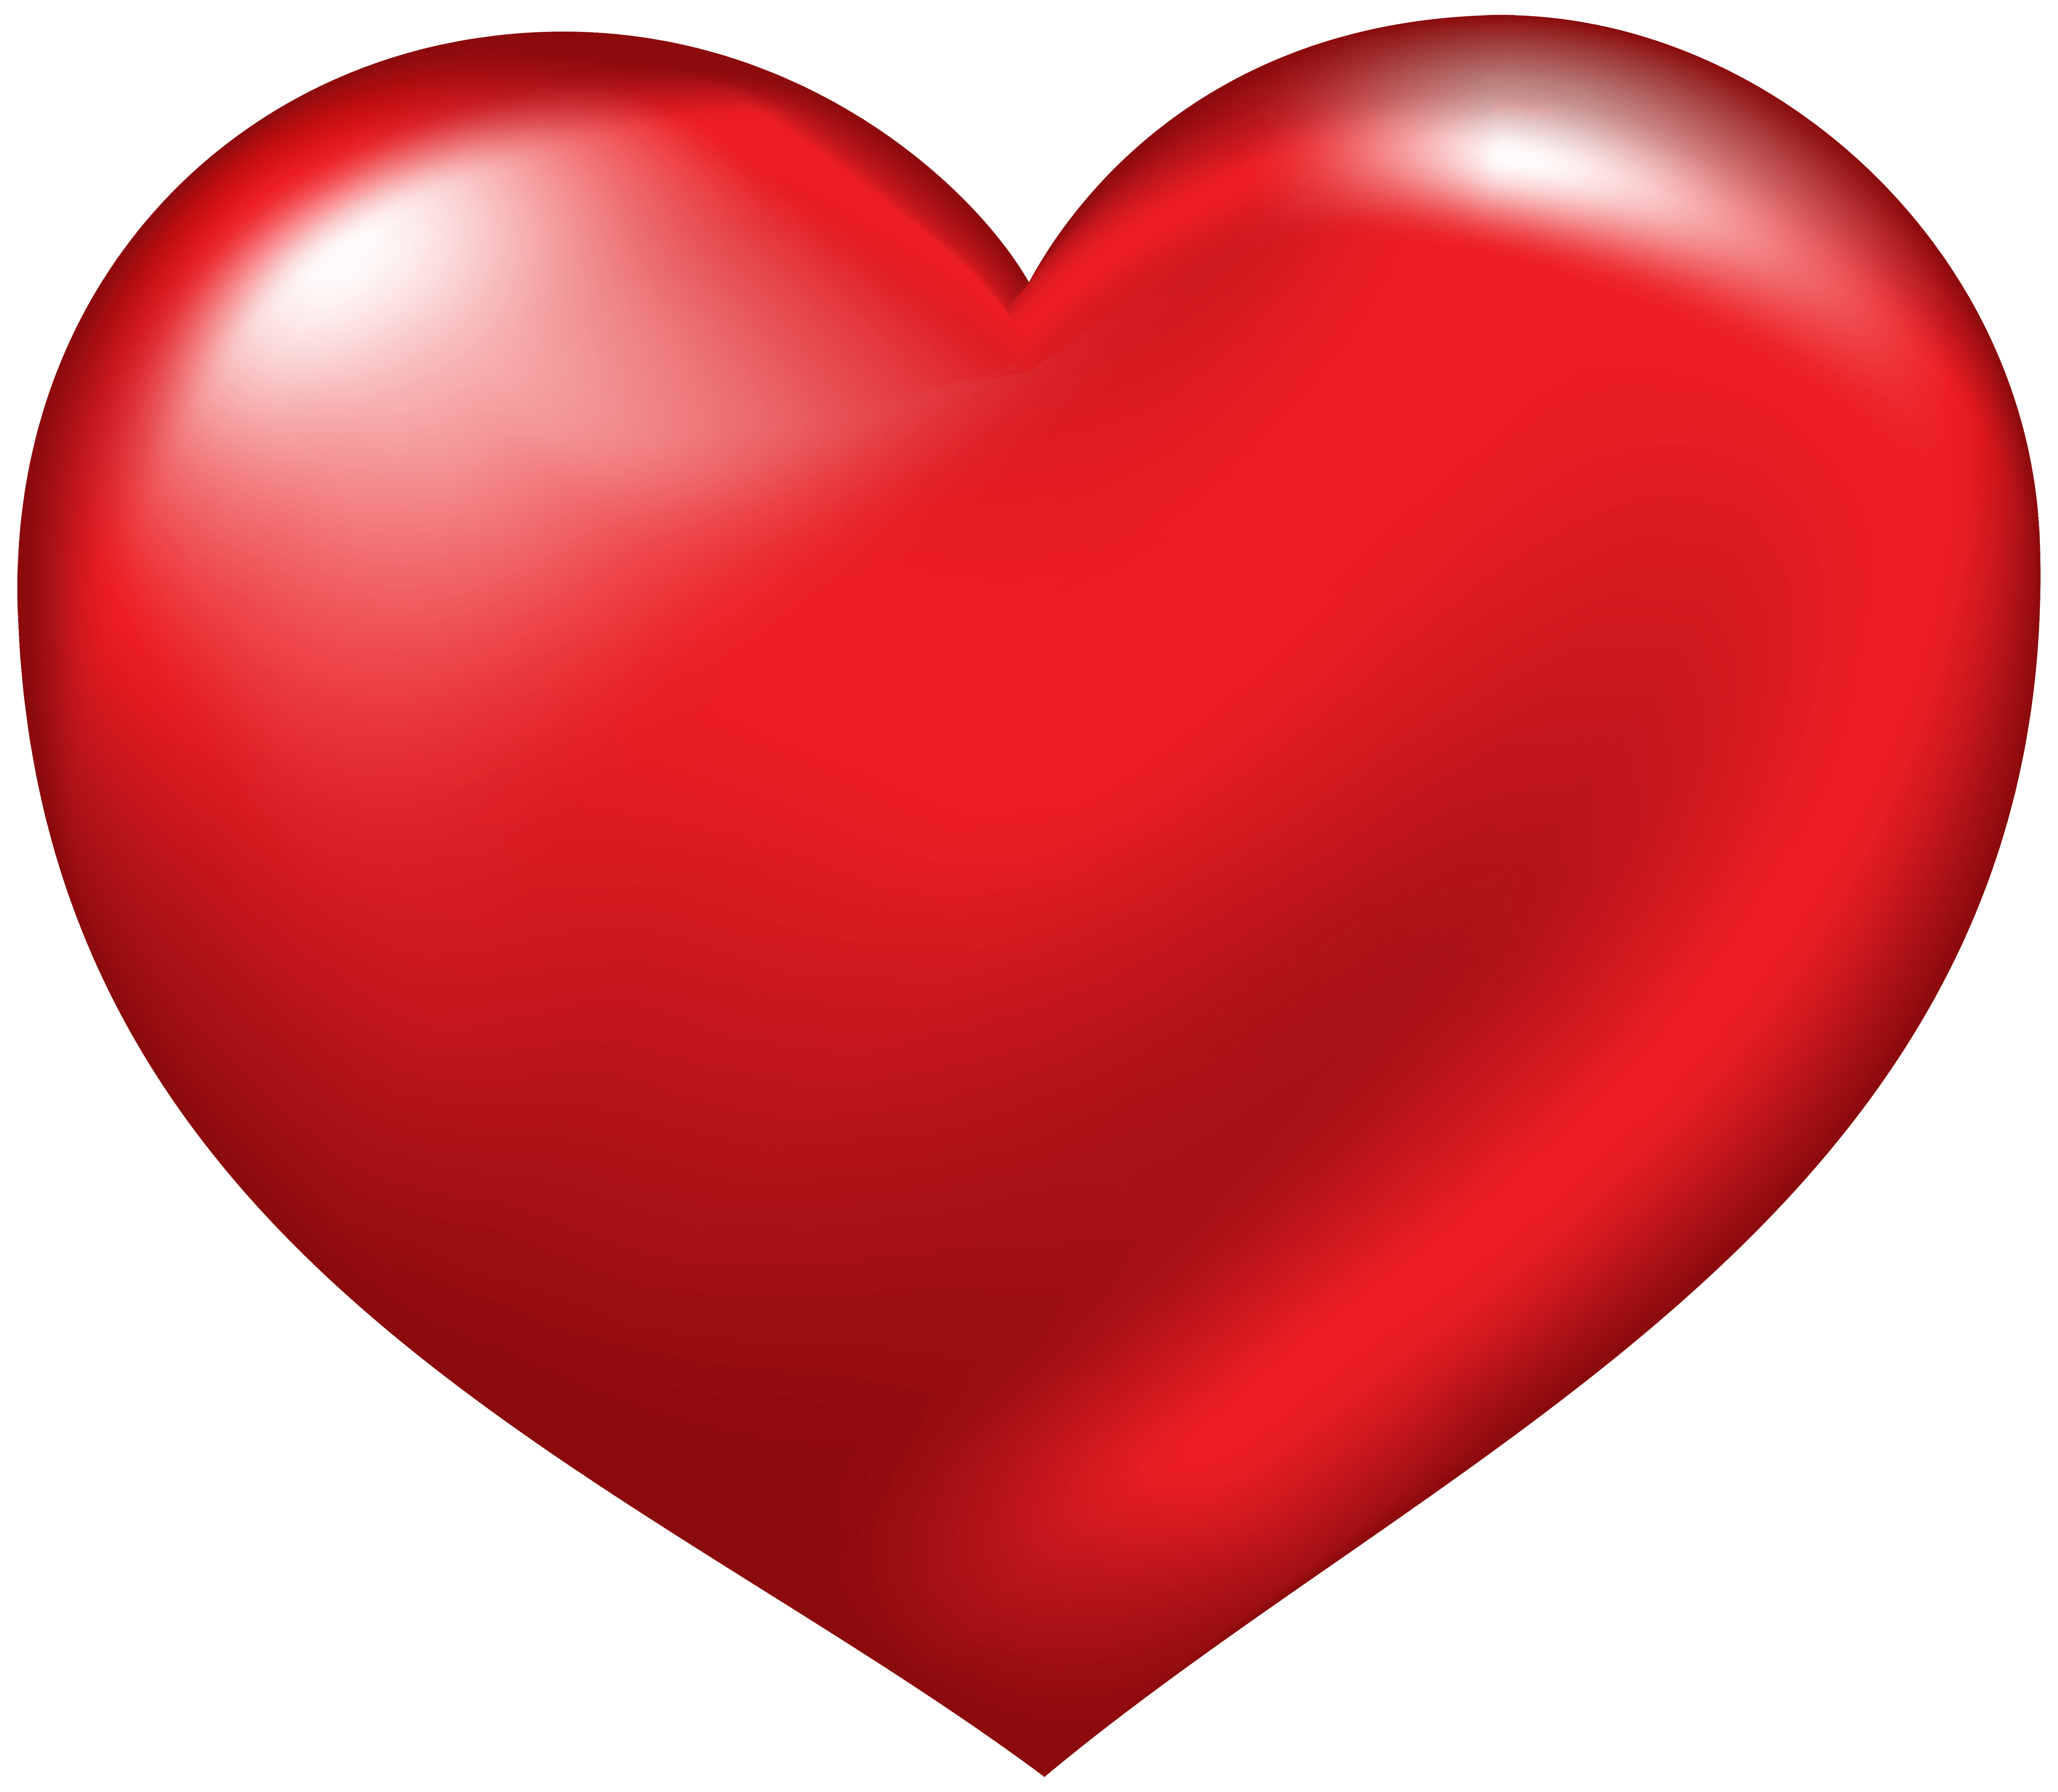 Clipart heart png. Red